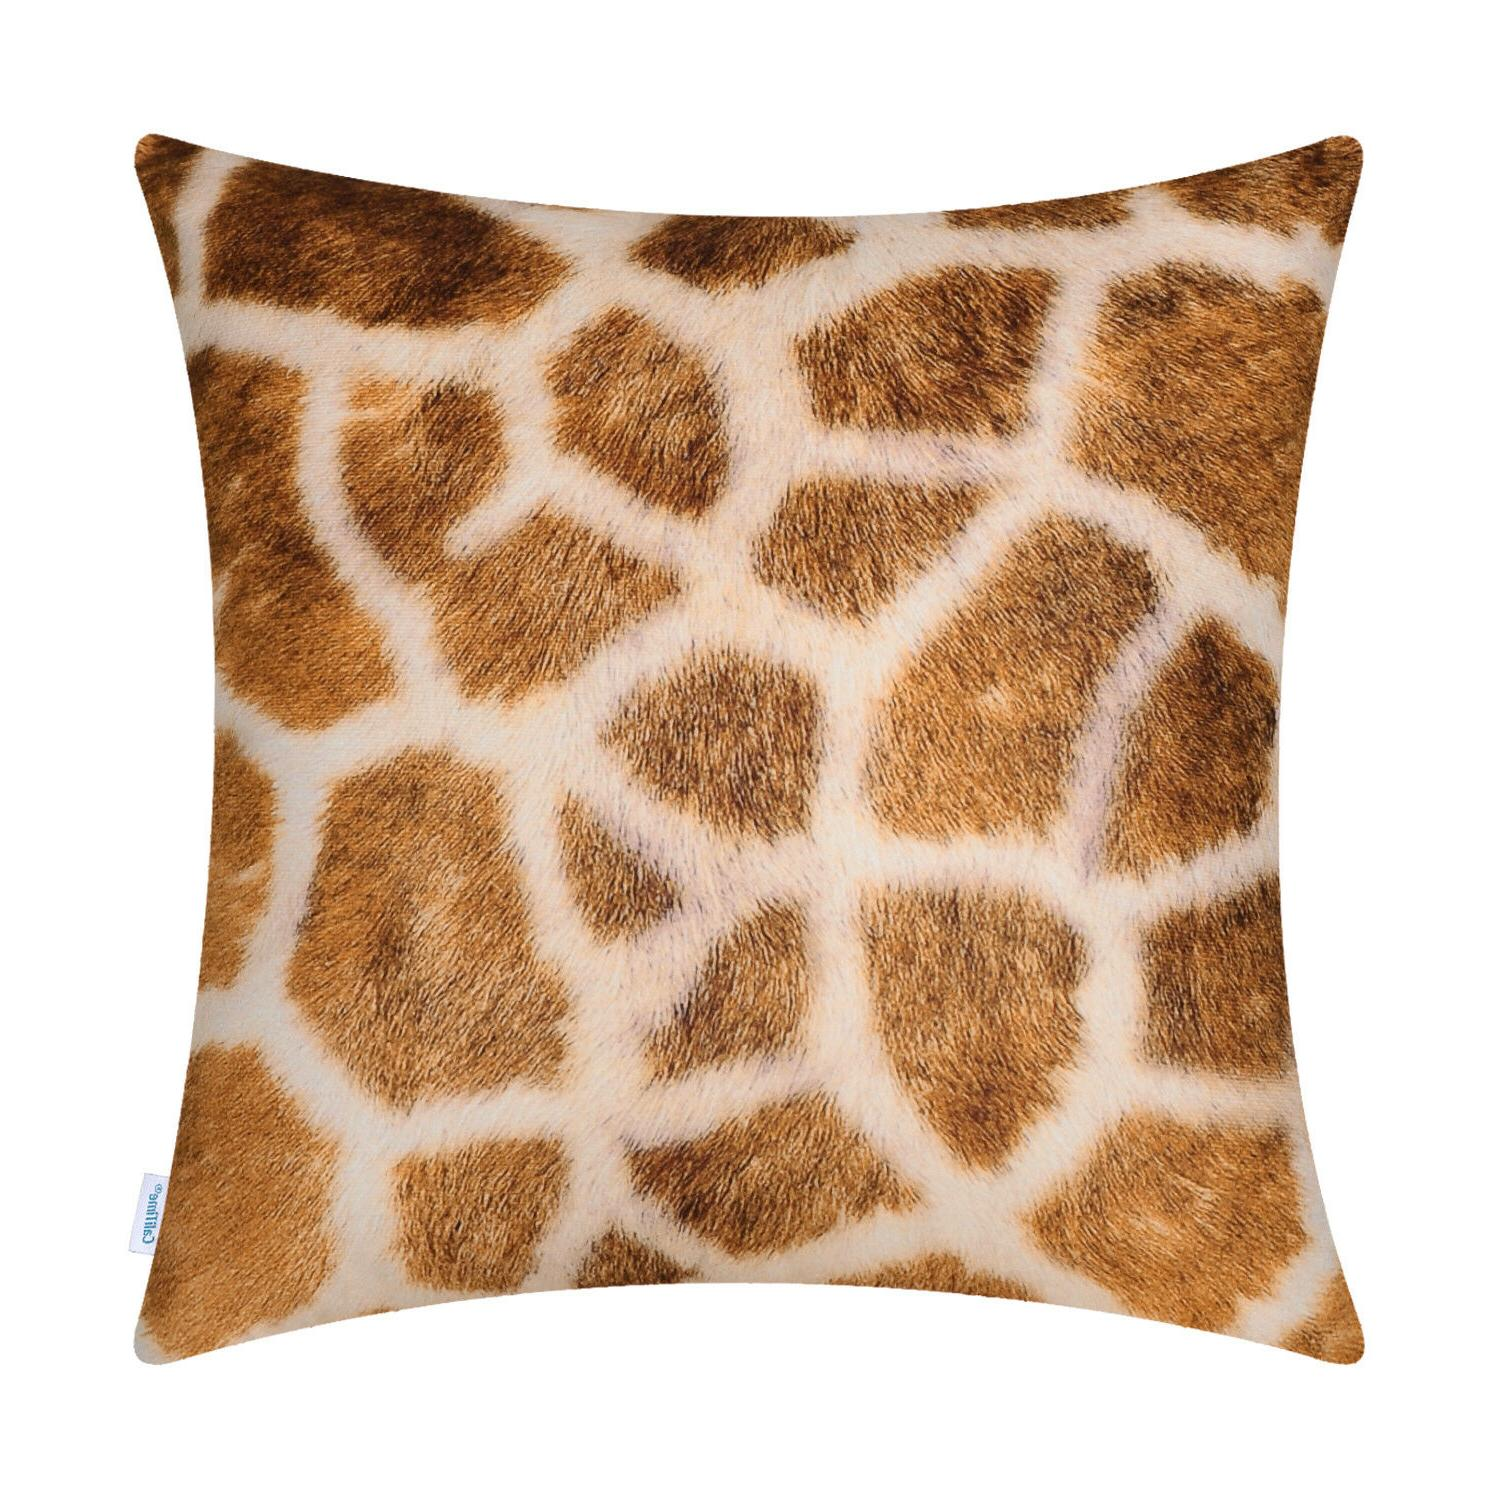 2pcs fleece pillow cases covers for couch